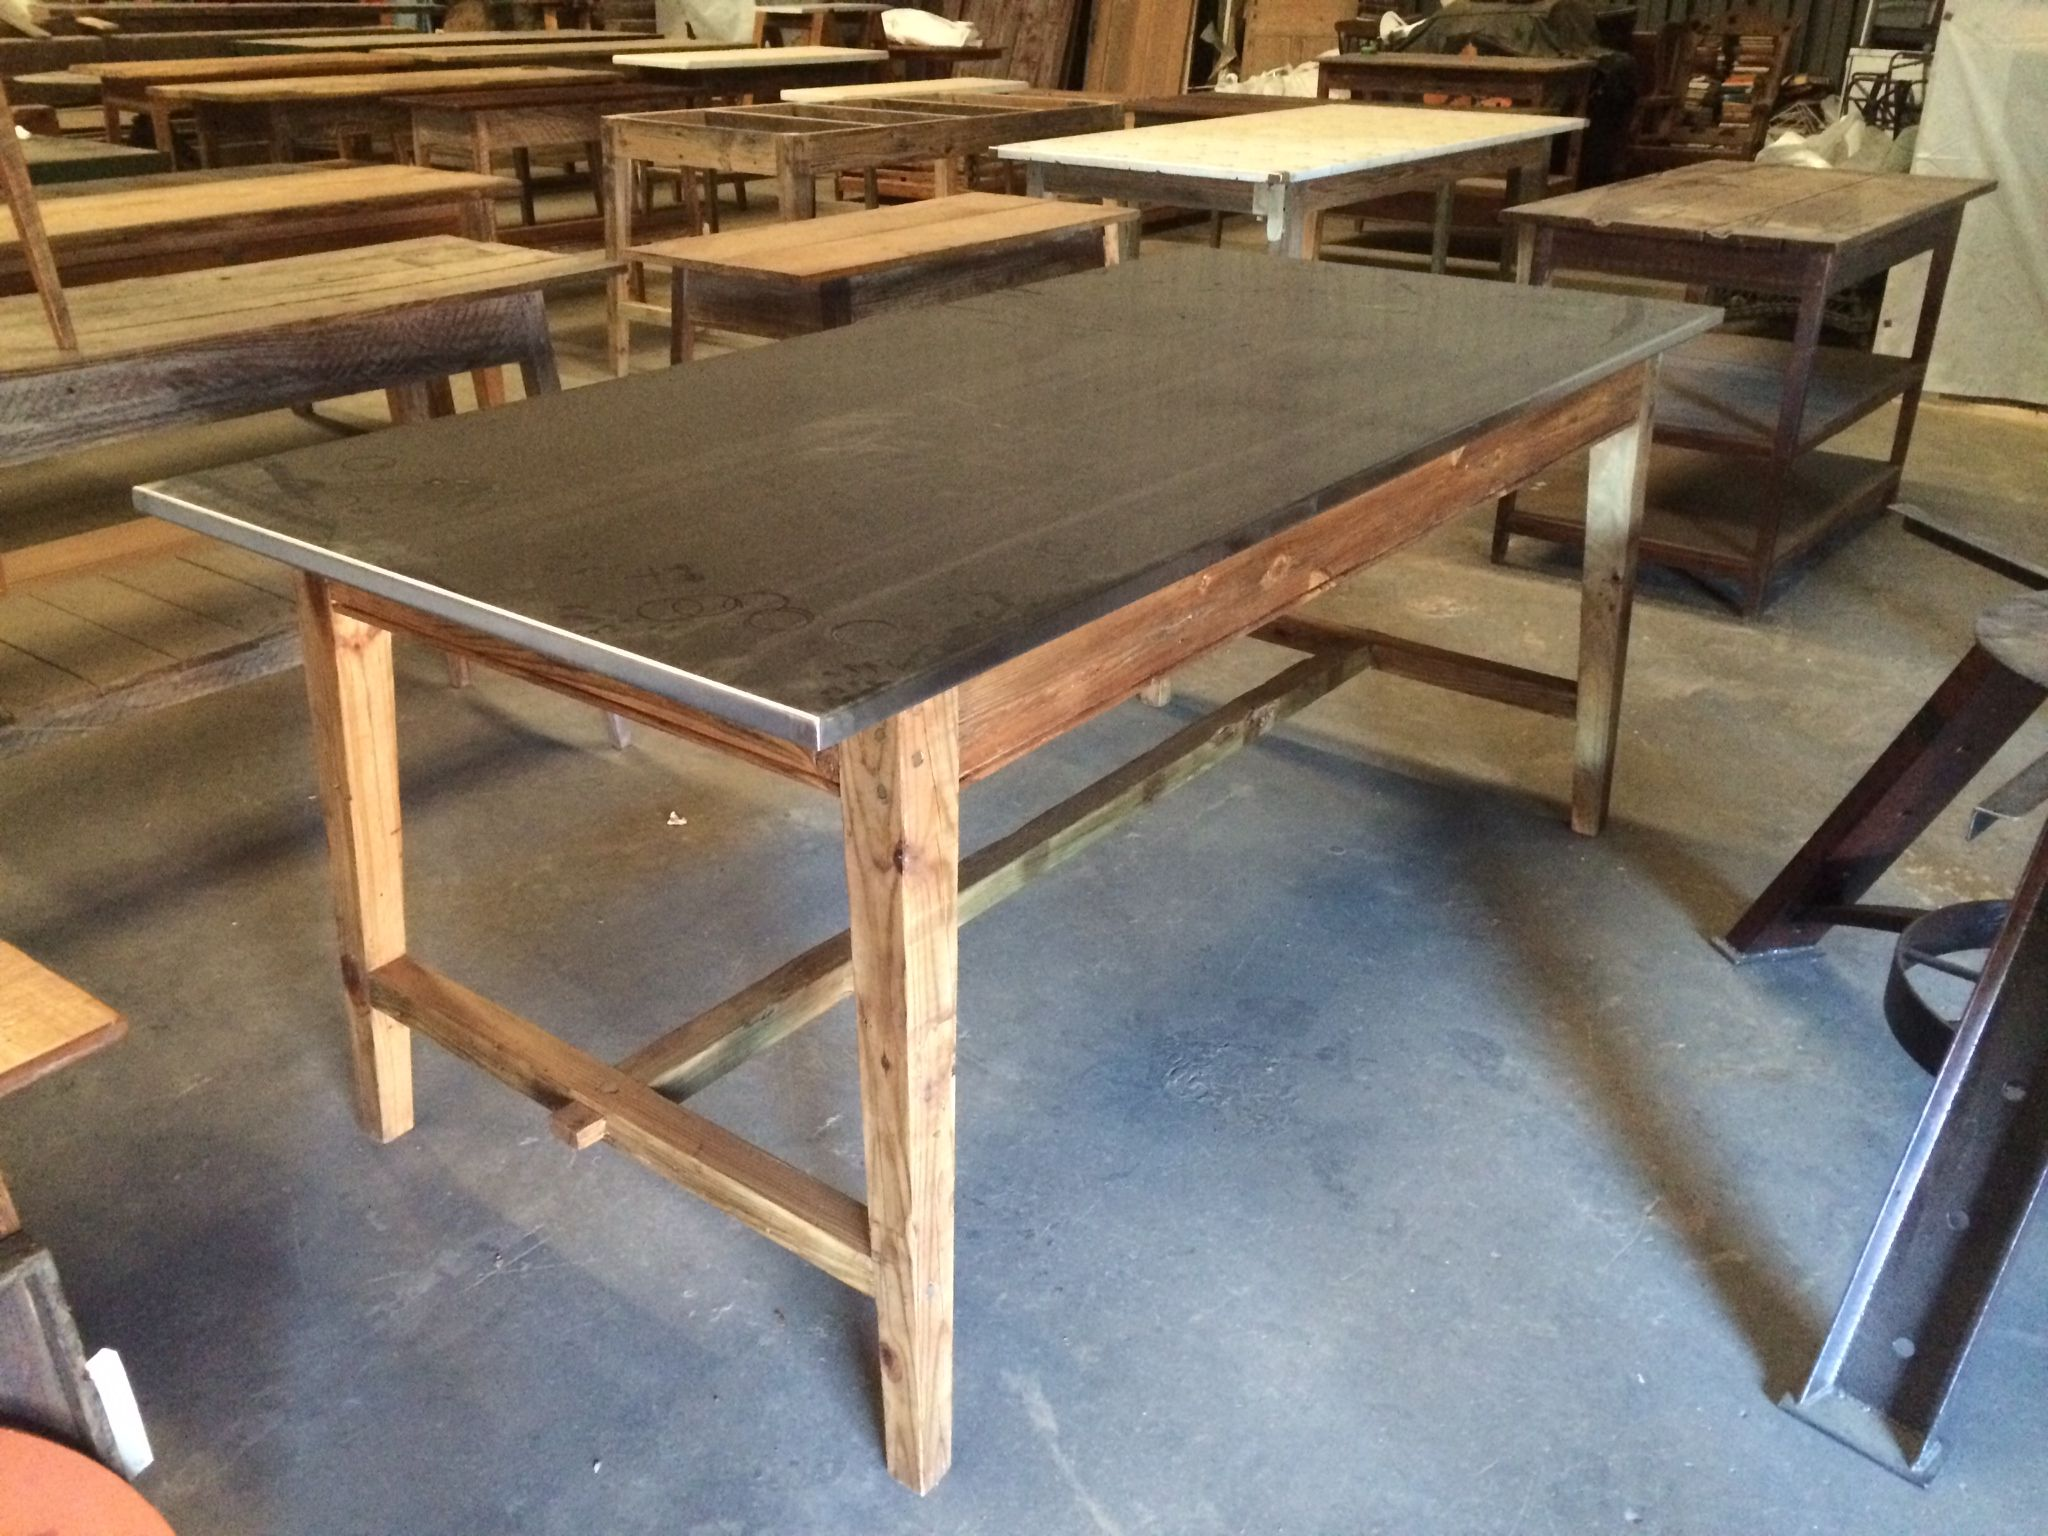 for the kitchen stainless steel kitchen table KItchen Island with stainless steel top Base made from old reclaimed wood by Landrum Tables